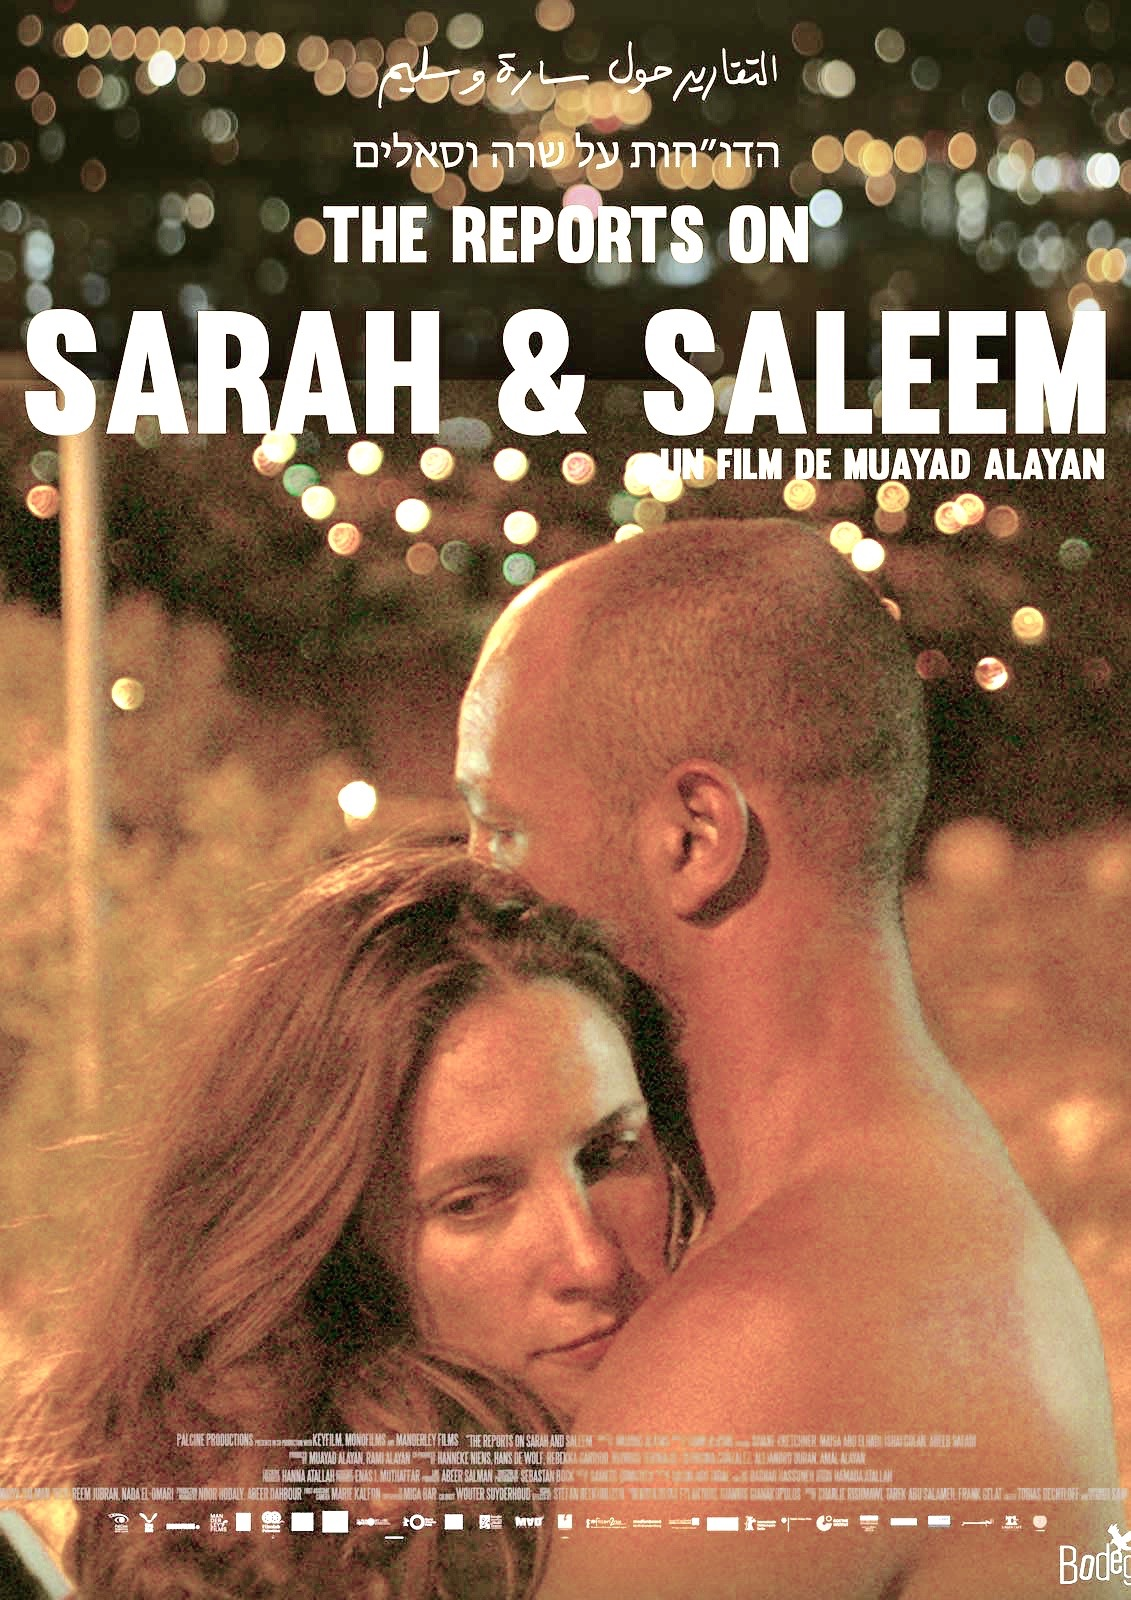 Film Reviews from Two Guys in the Dark: The Reports on Sarah and Salem